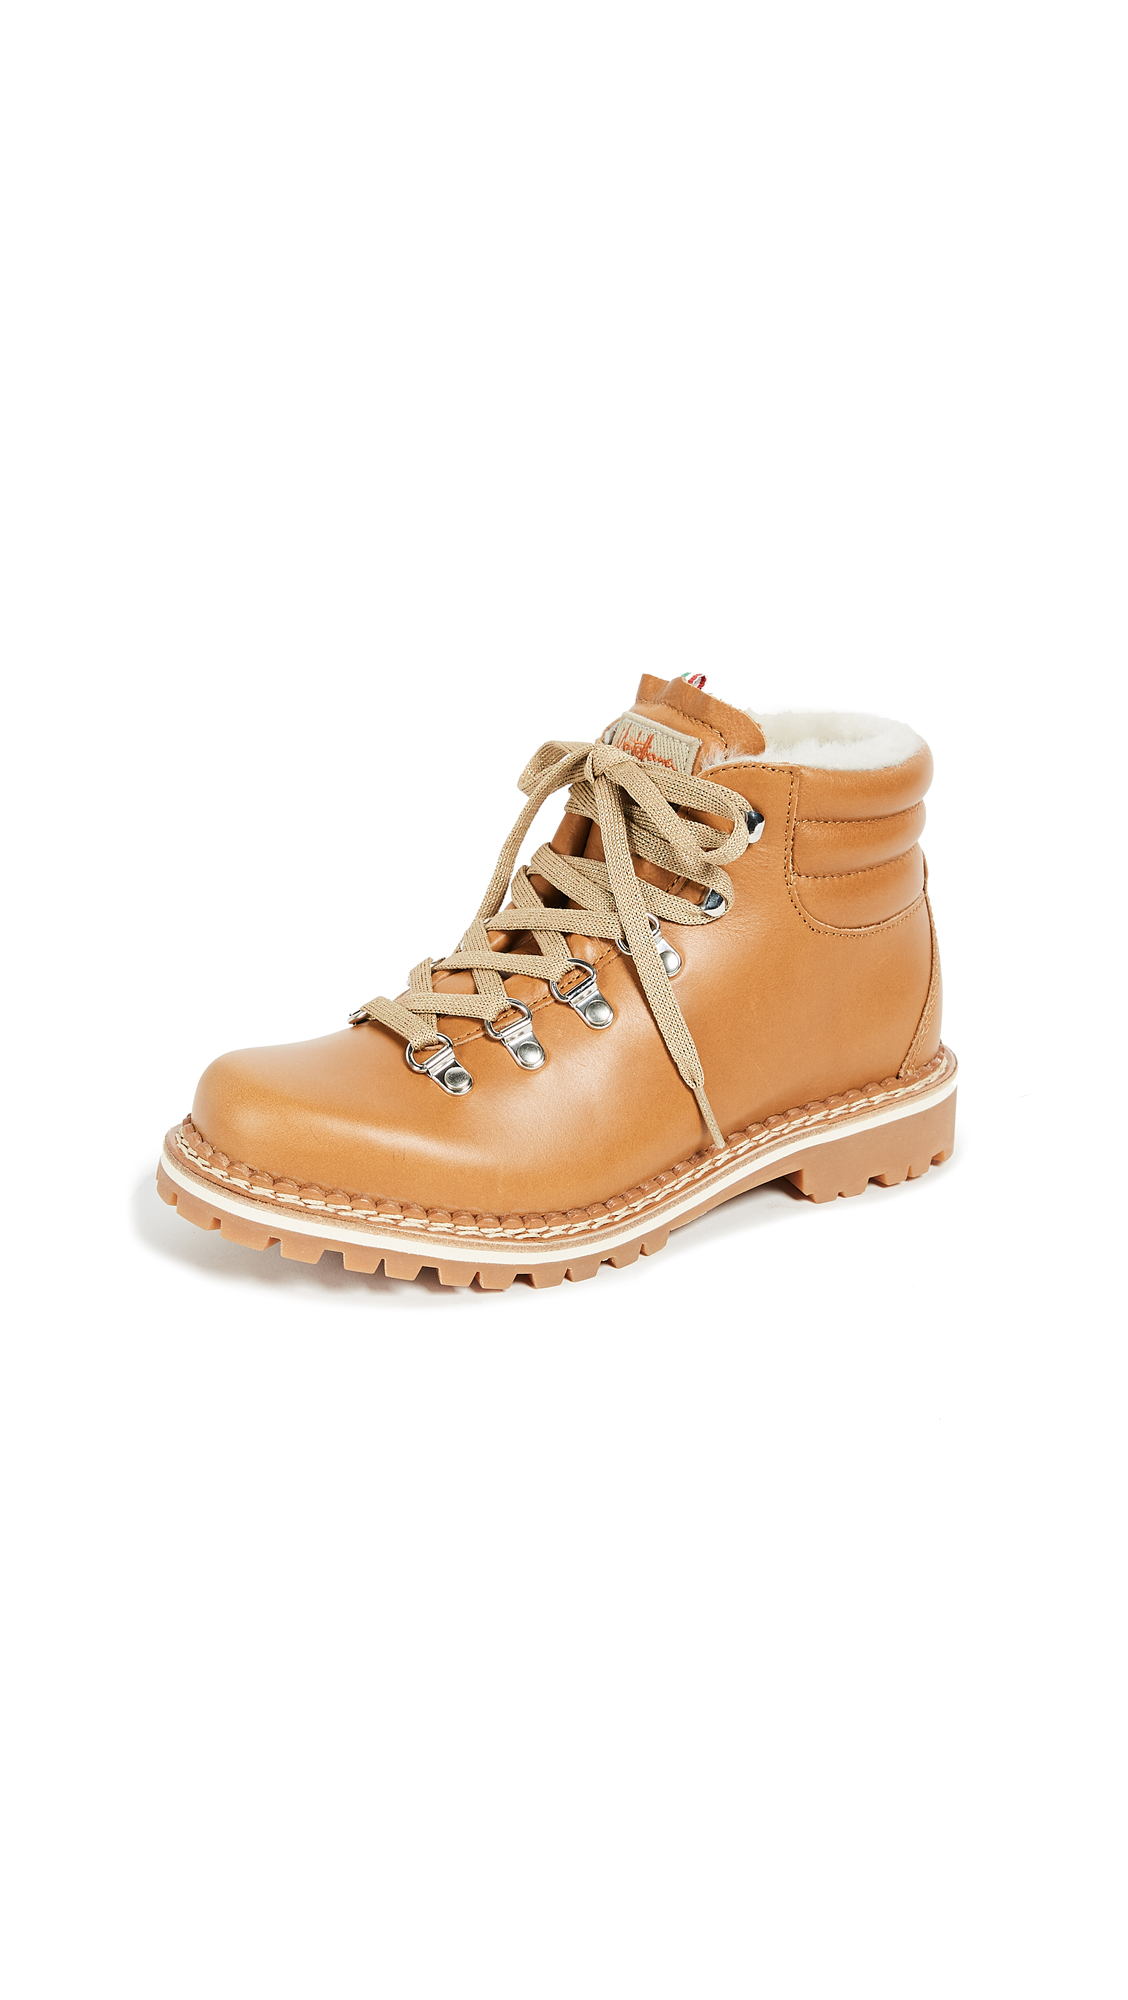 Montelliana Margherita Hiker Boots - Tan